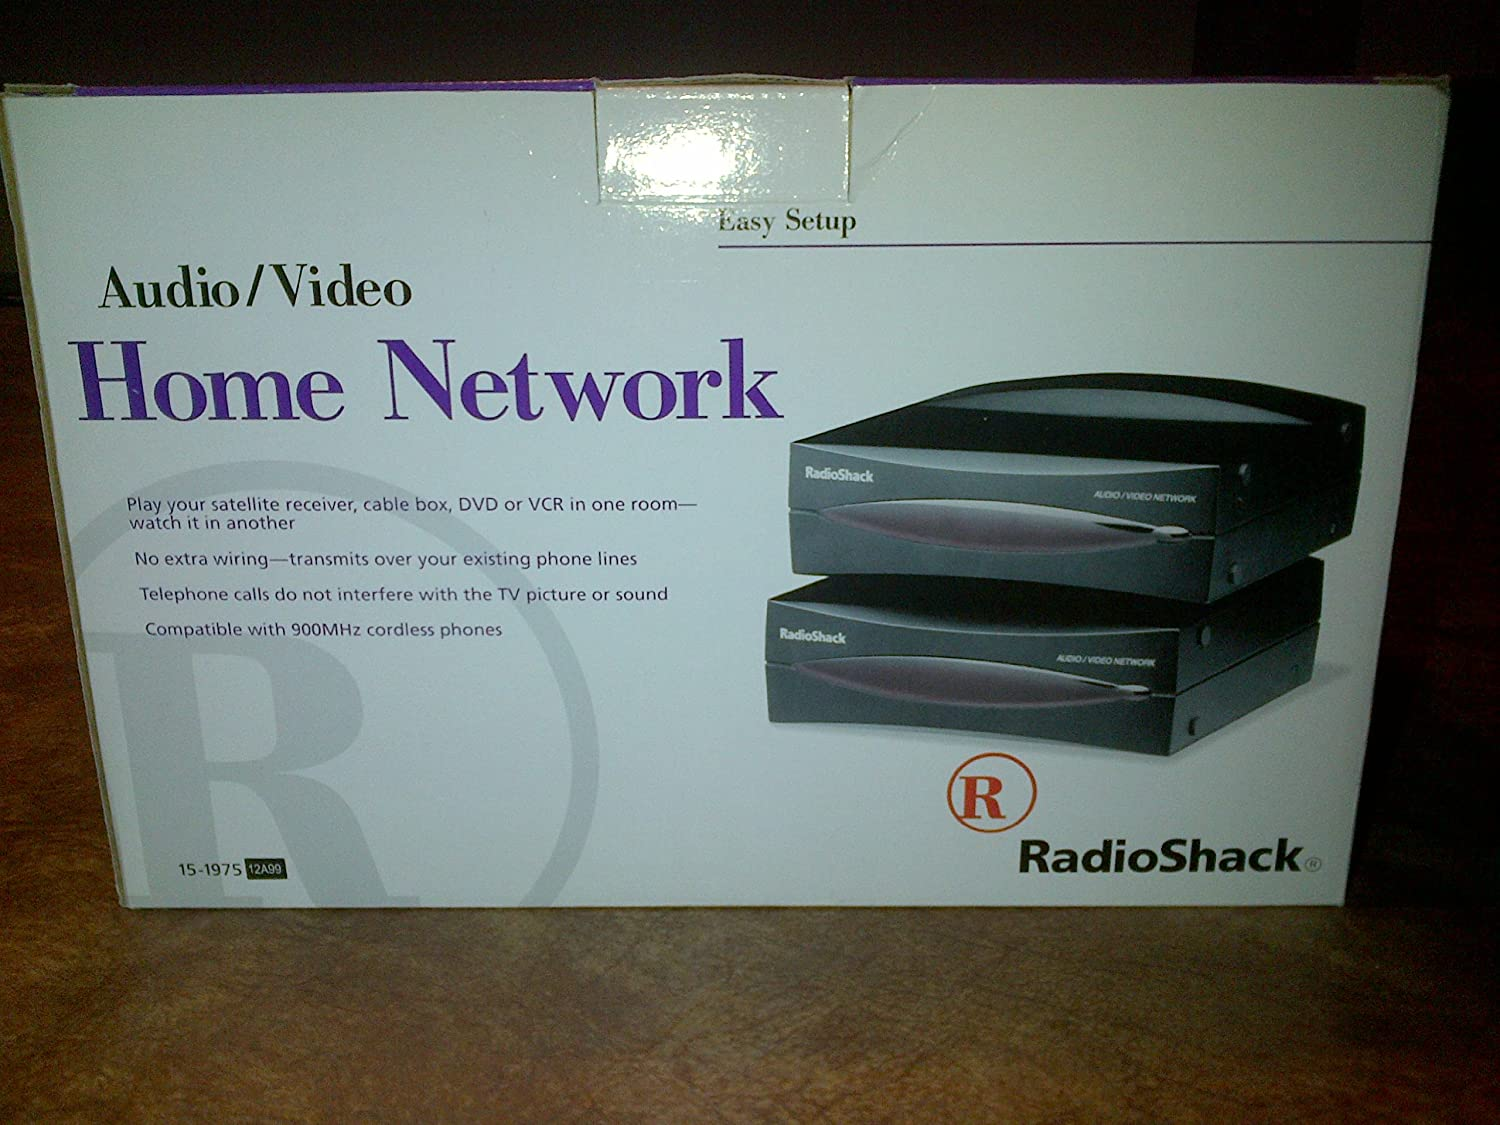 Amazon.com: Audio/Video Home Network Model 15-1975: Home Audio & Theater